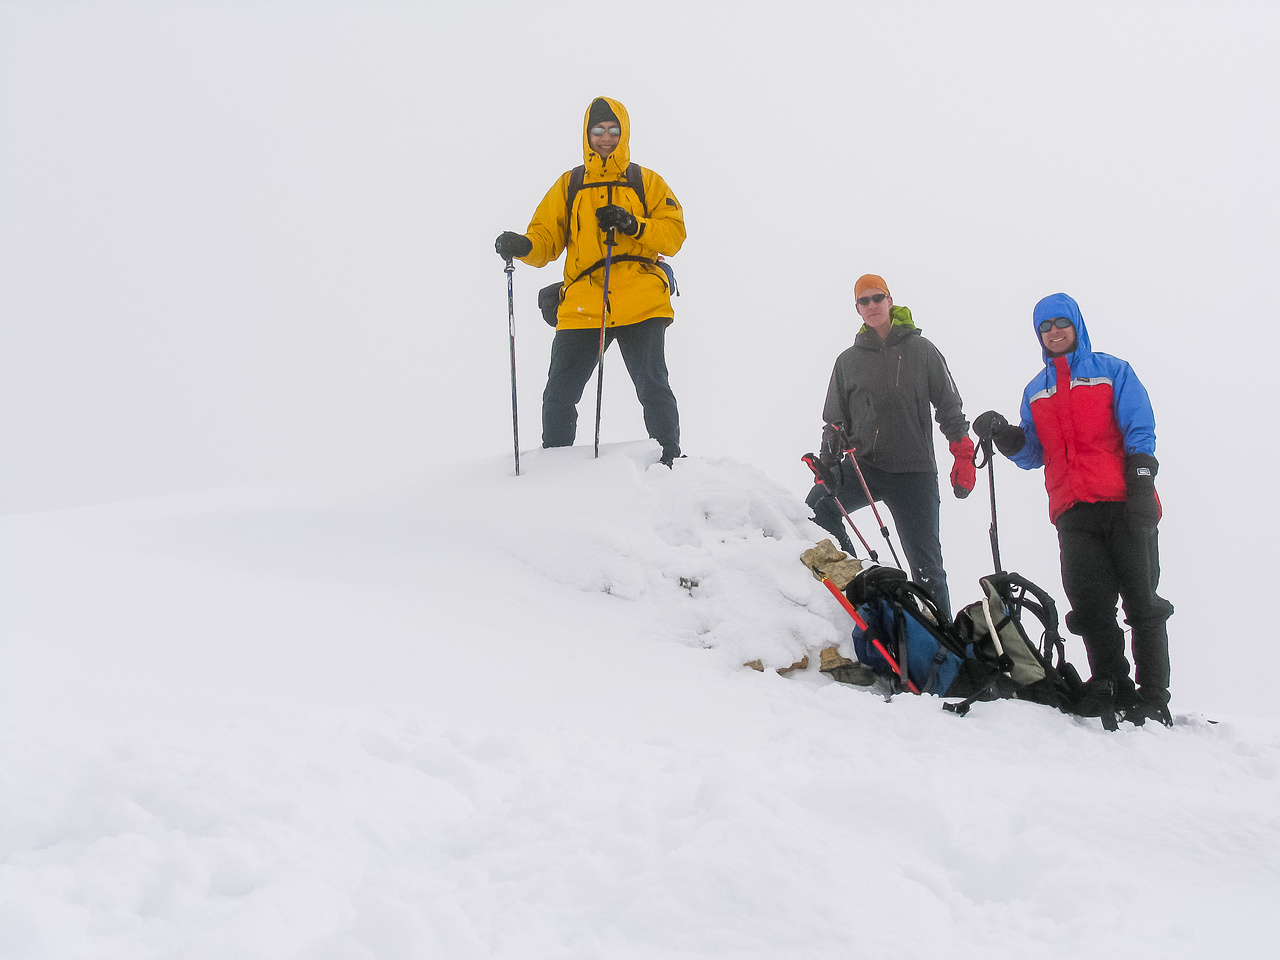 Kelly, Sonny and Vern at the summit of Sunwapta Peak.